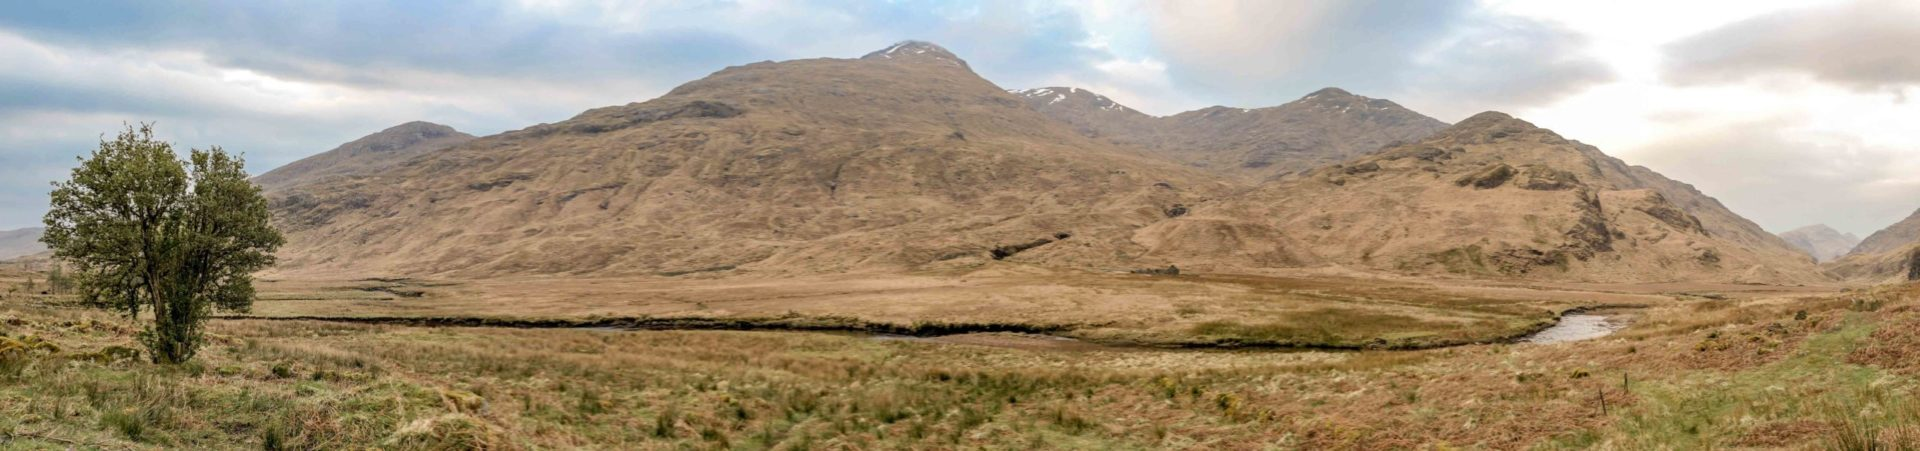 Looking across Glen Pean, towards Sgurr Thuilm, Beinn Gharbh and Meall an Tarchachain, shot by our Ben Nevis Guide